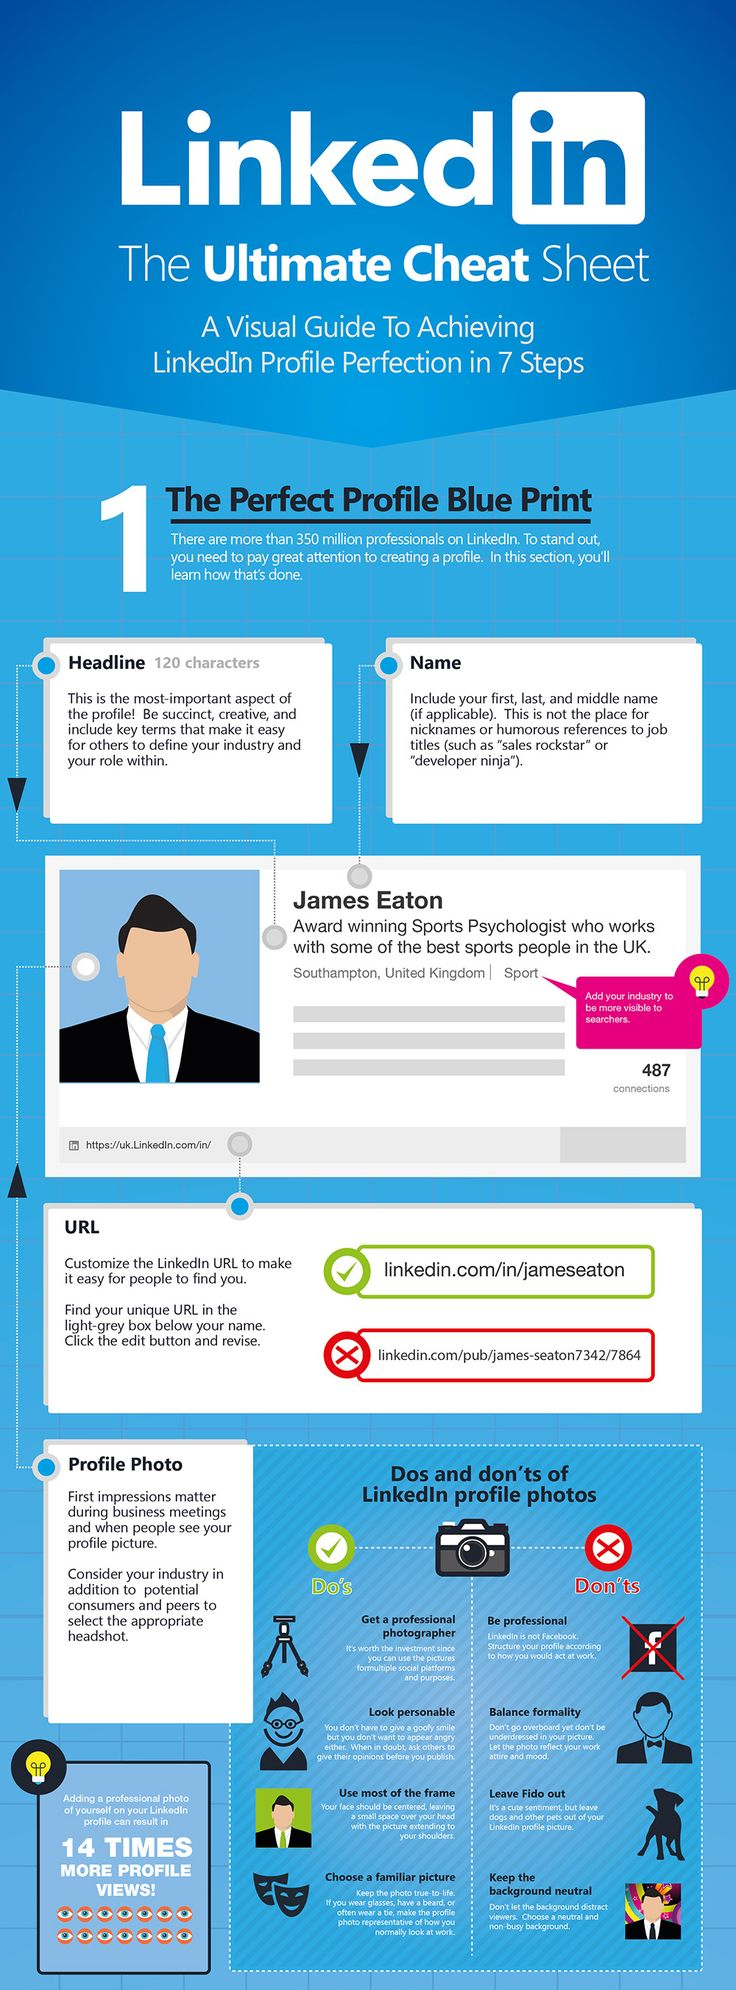 The ultimate Linkedin cheat sheet - infographic - create the perfect Linkedin profile, maximise your online visibility, build your contact list